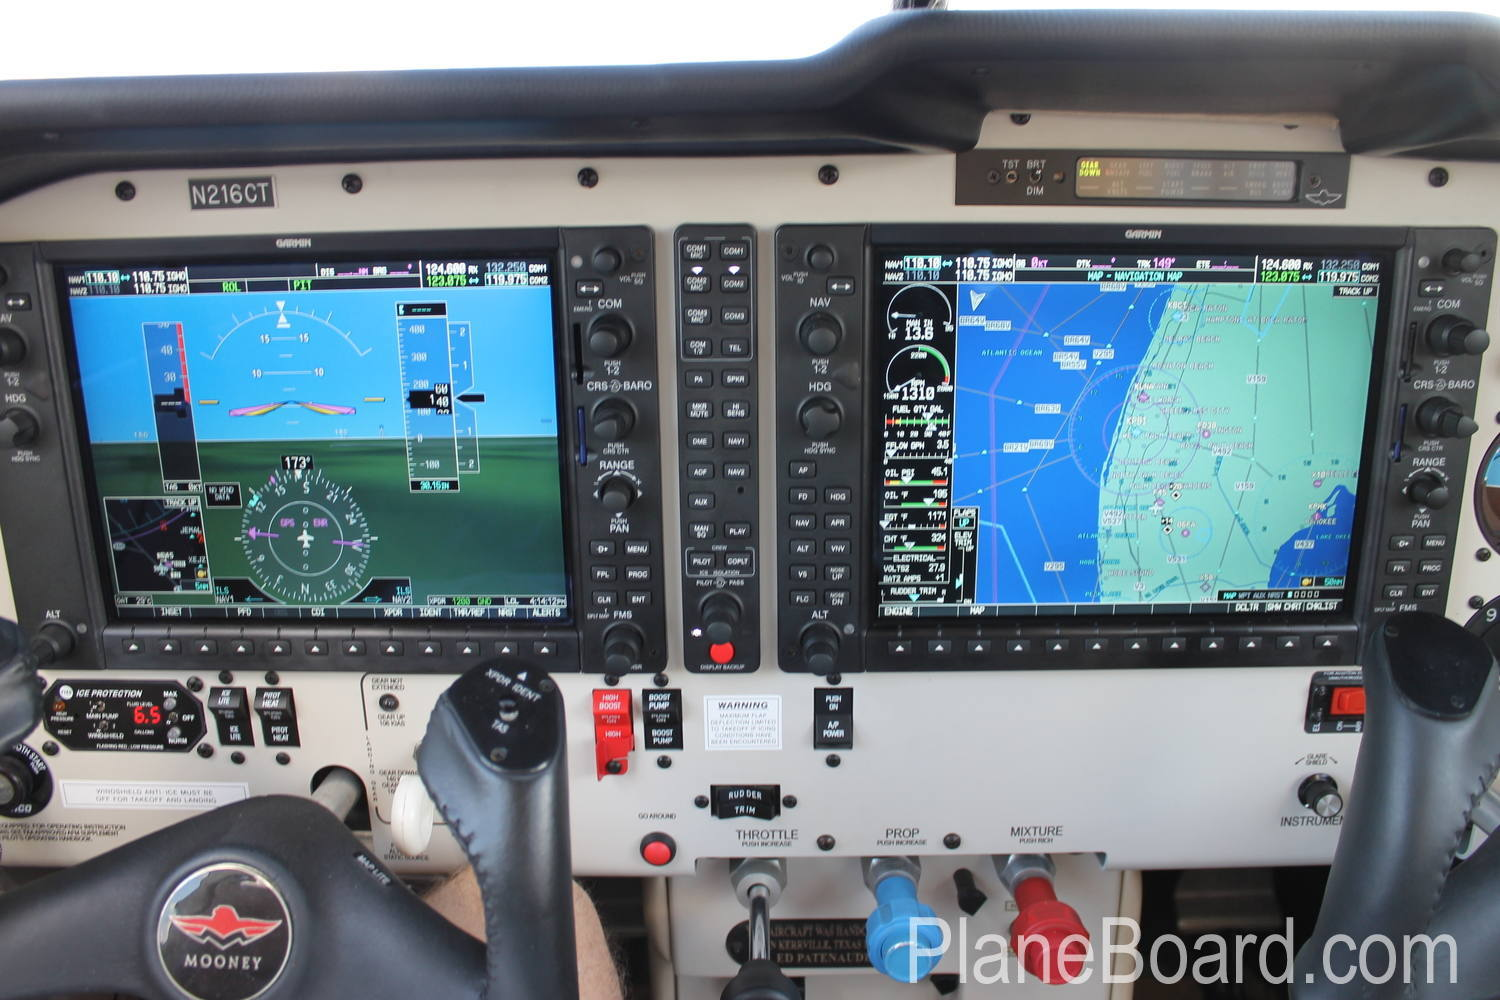 2008 Mooney M20R Ovation3 GX interior 20